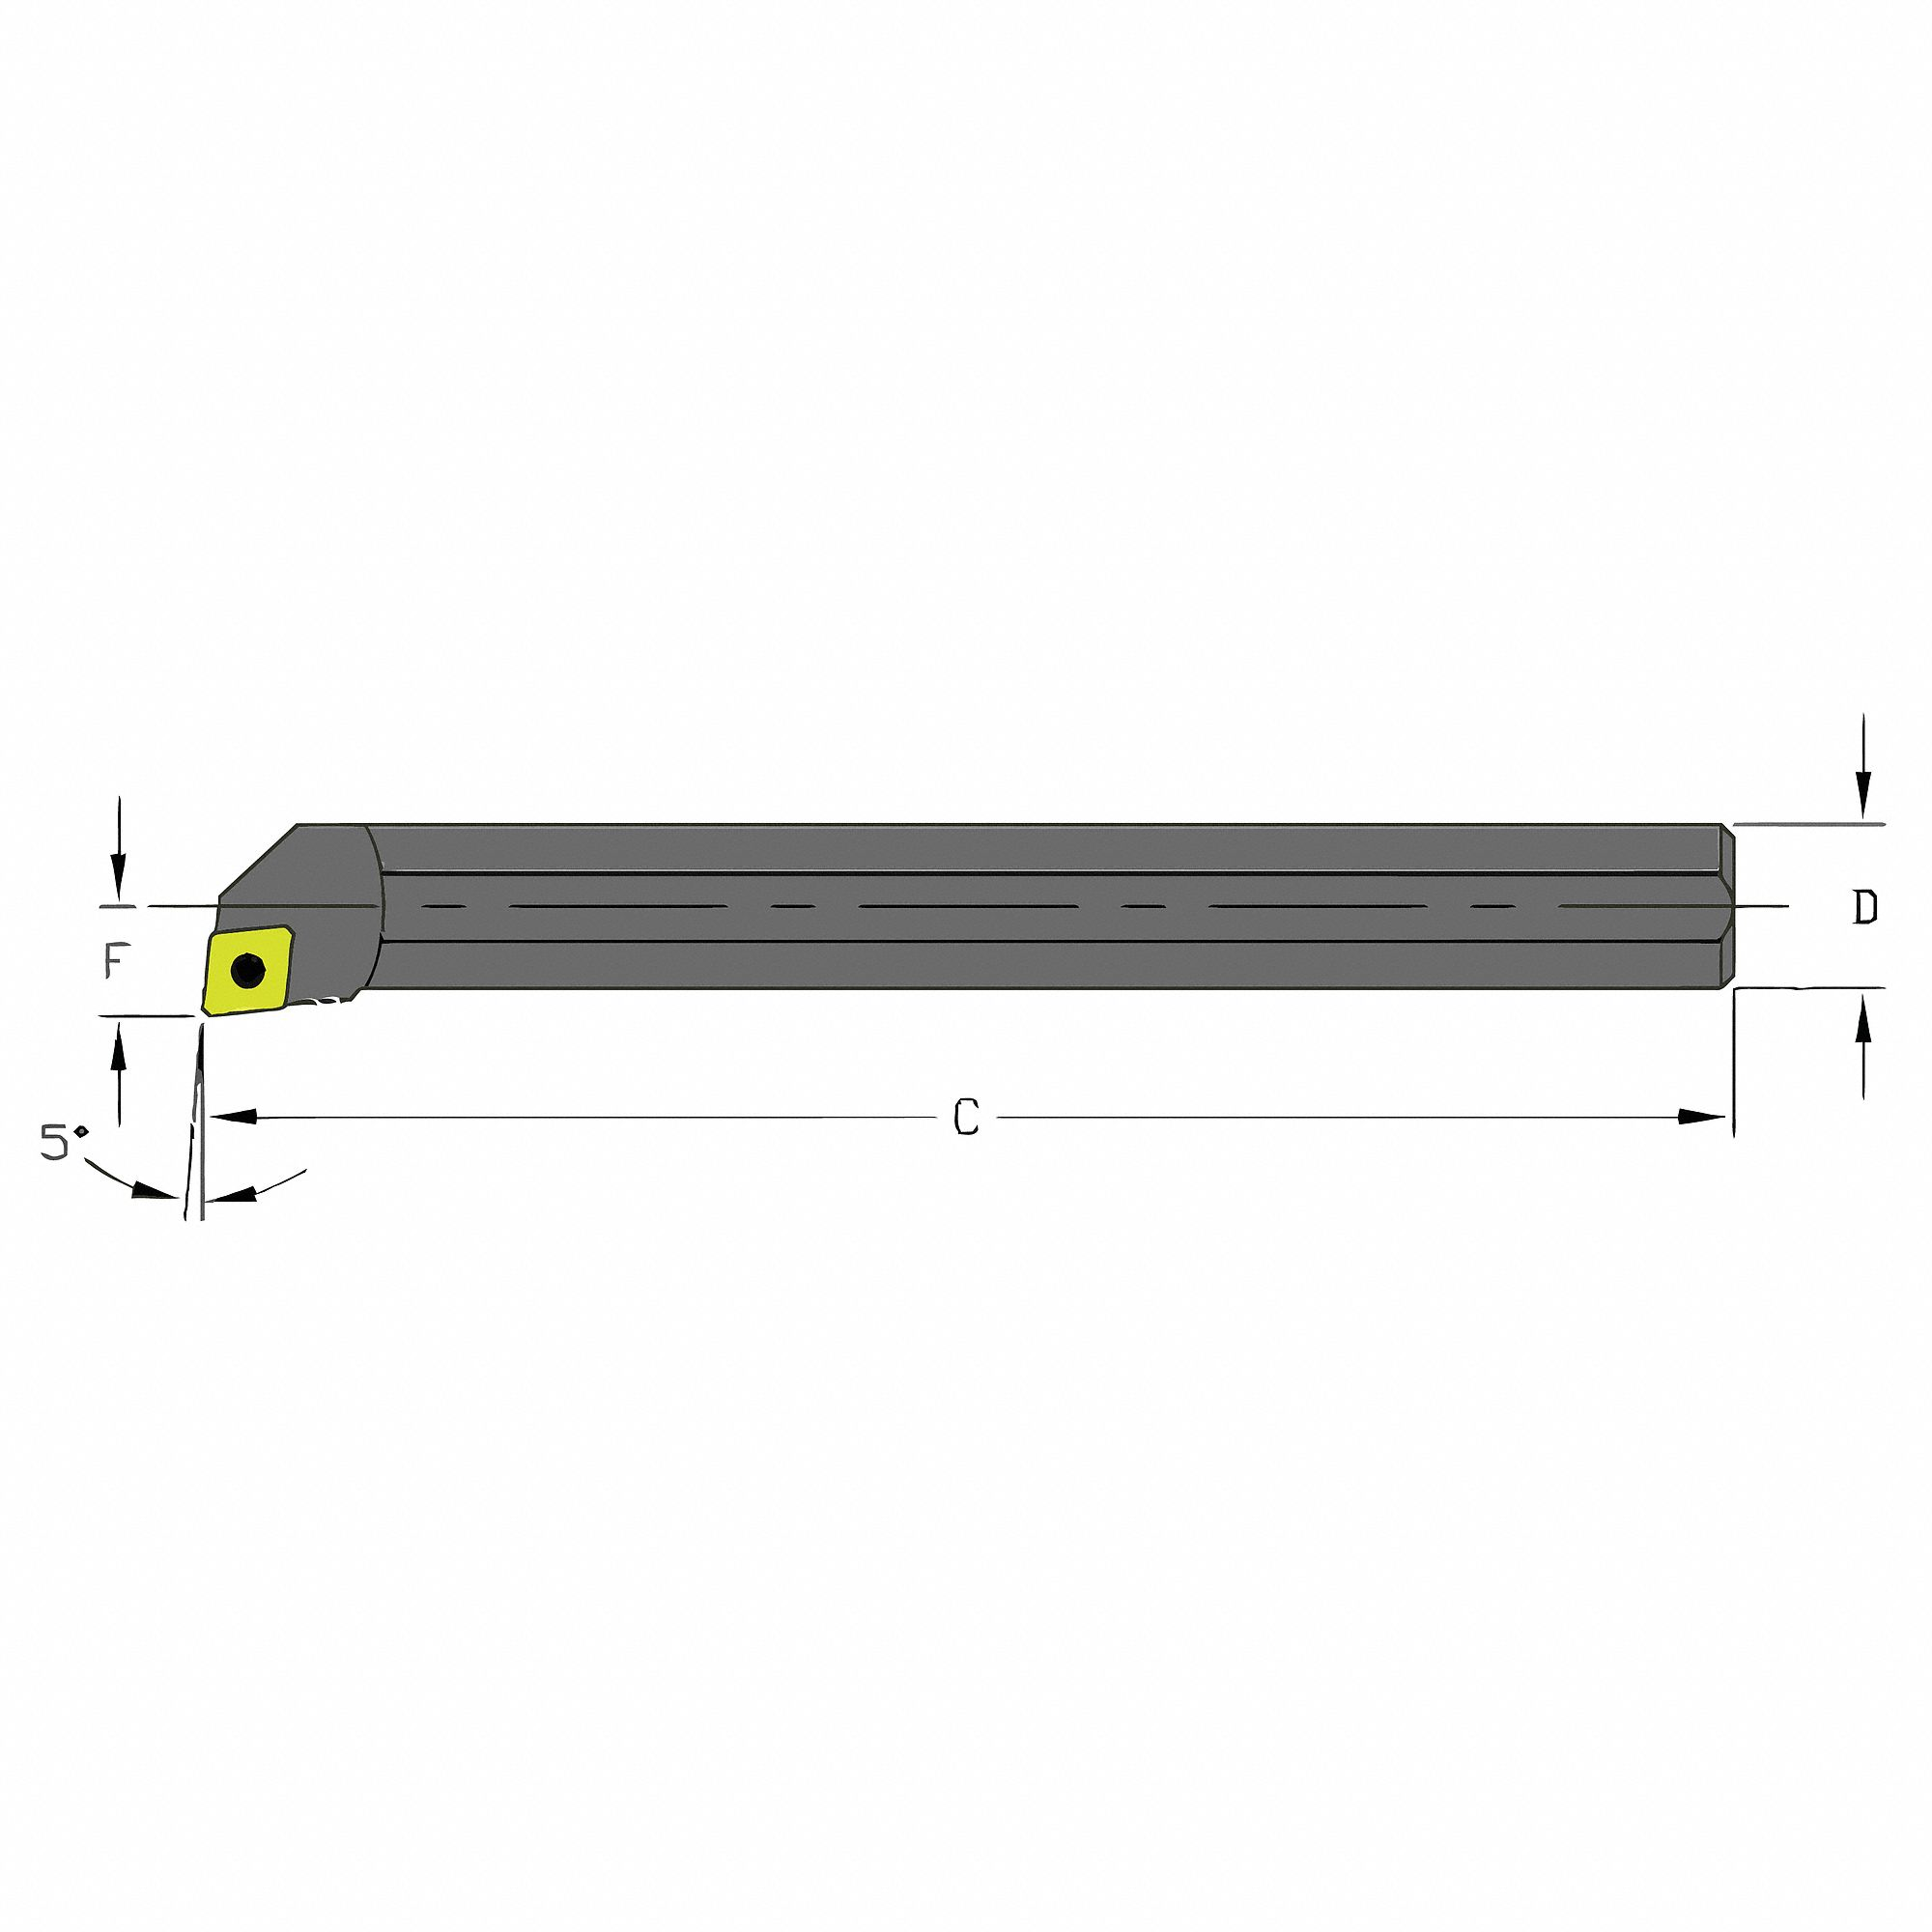 Indexable Boring Bar,  A-SCLP,  Insert Shape 80° Diamond,  Overall Length 6 in